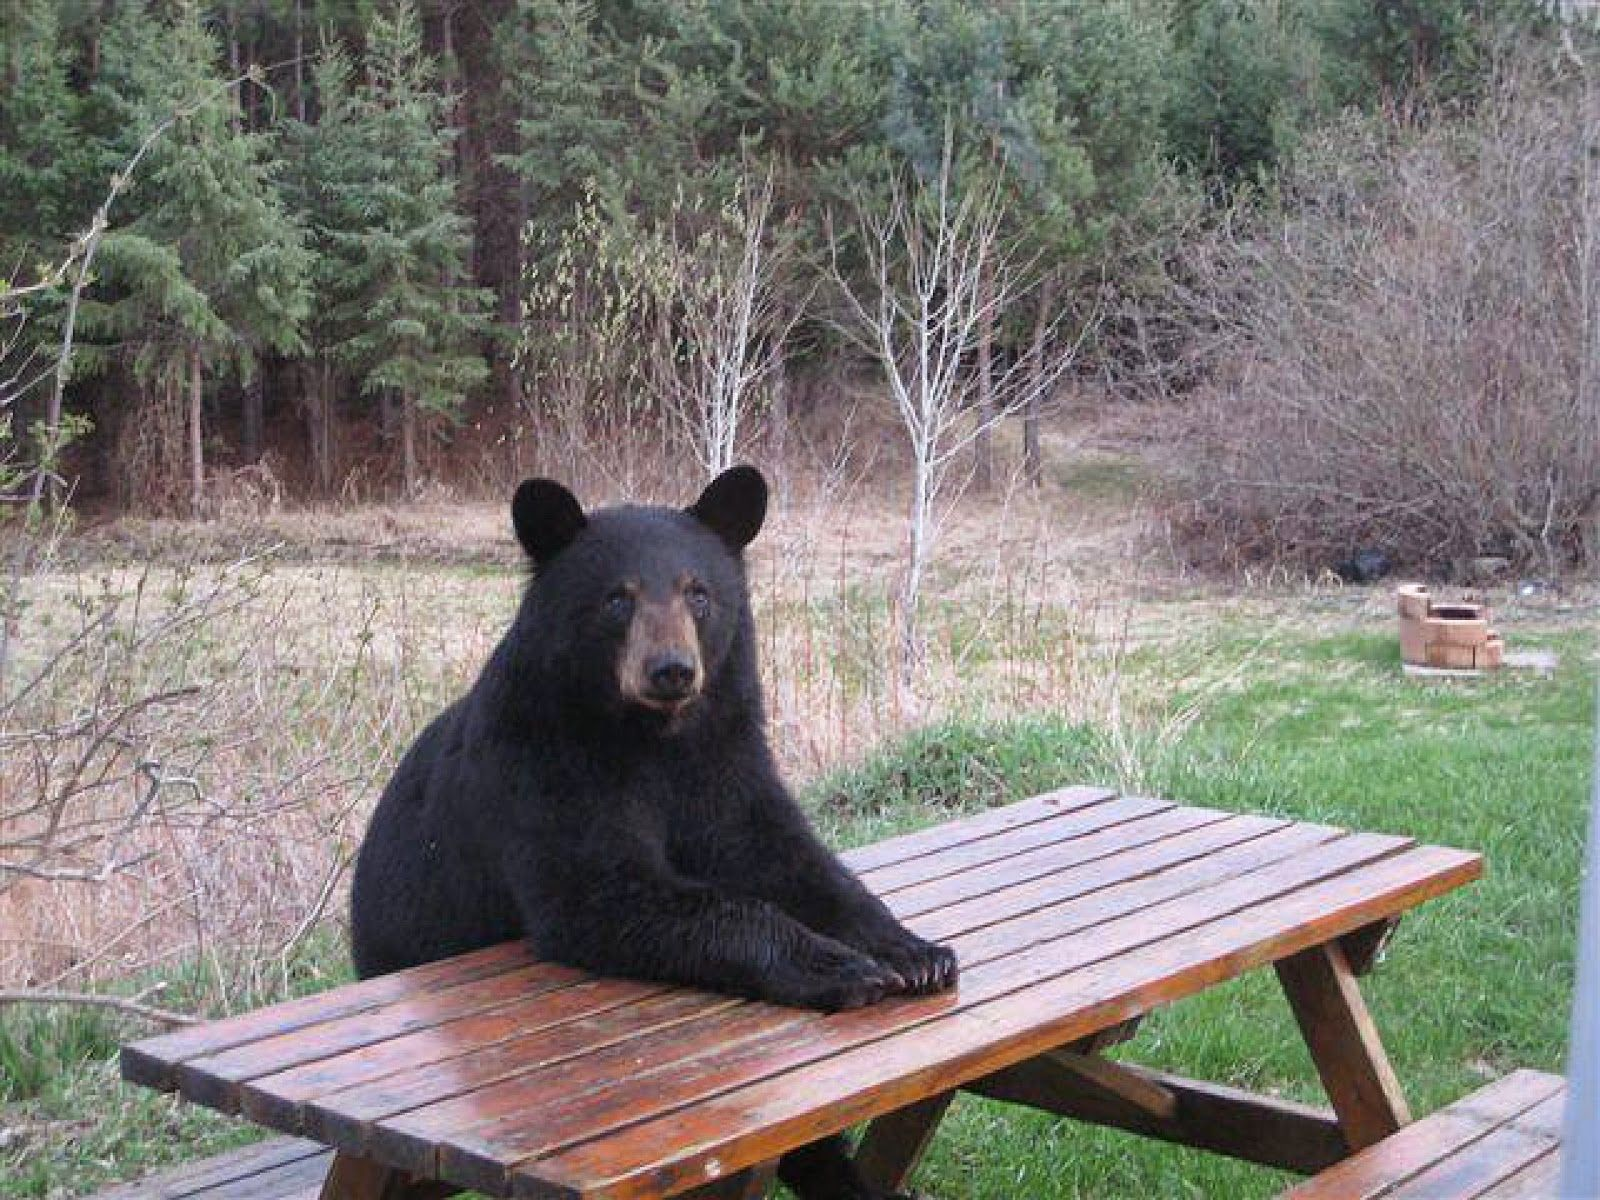 Bears Like To Have Picnics. And At These Picnics, They Like To Sit At Picnic  Tables. Sometimes, After A Nice Picnic, Theyu0027ll Sit At Th.